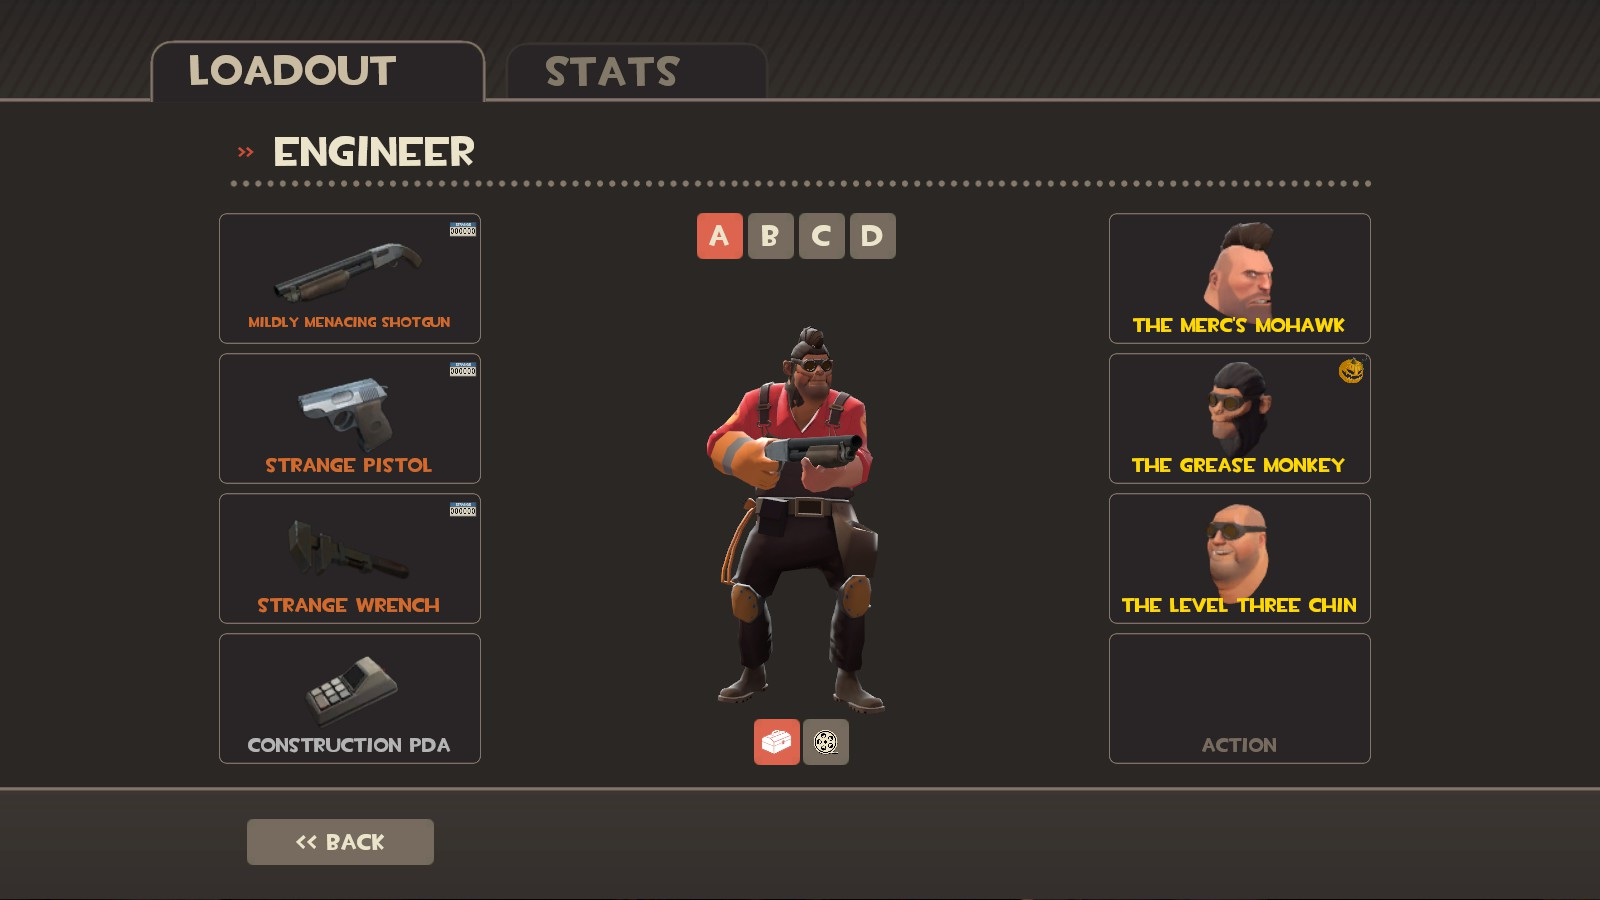 Give This Loadout A Name Games Teamfortress2 Steam Tf2